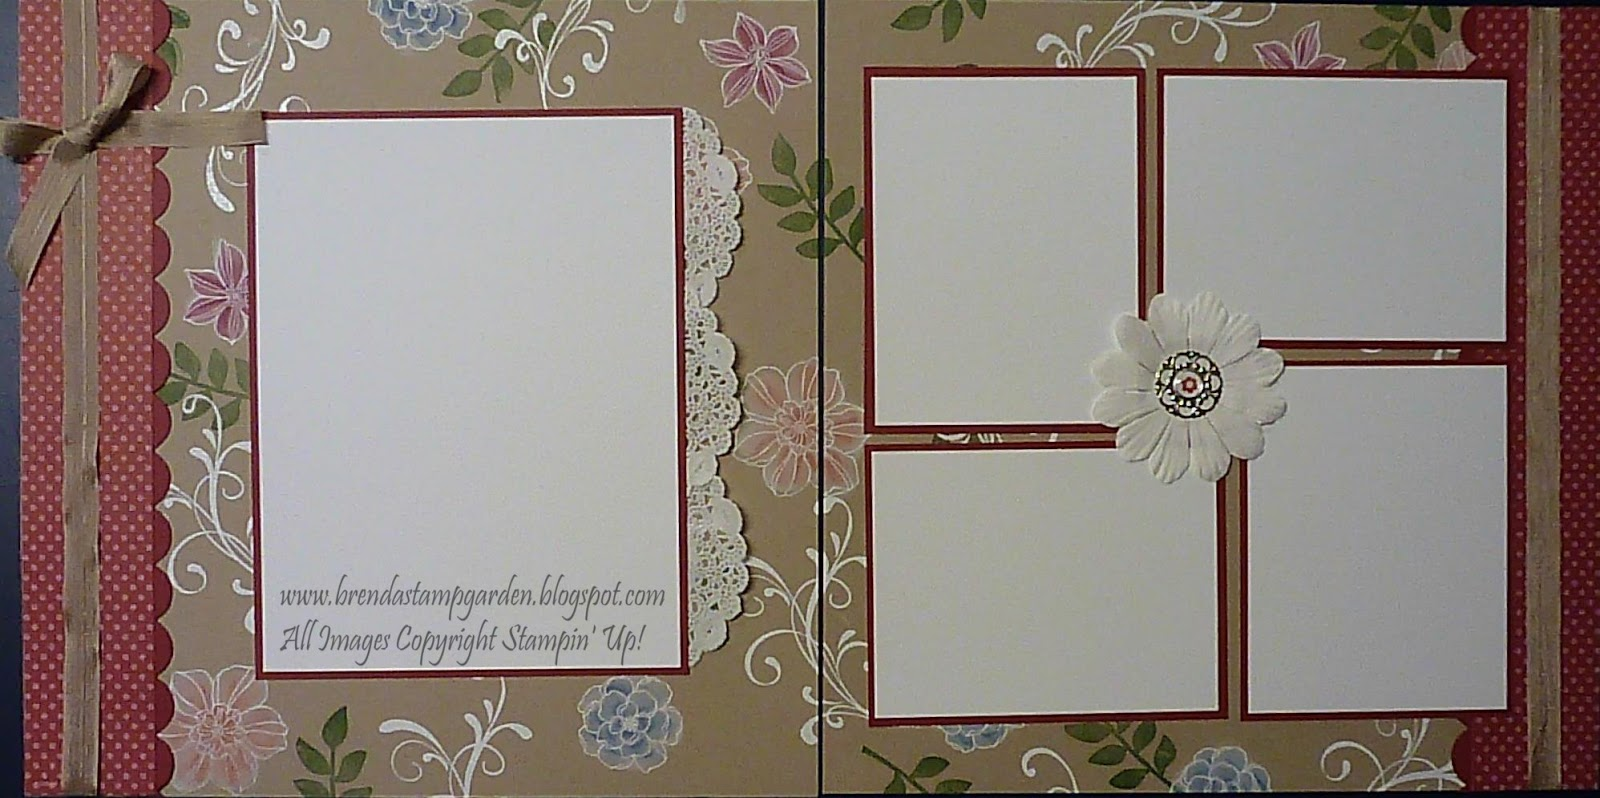 Scrap book pages - To Make These Pages You Ll Need